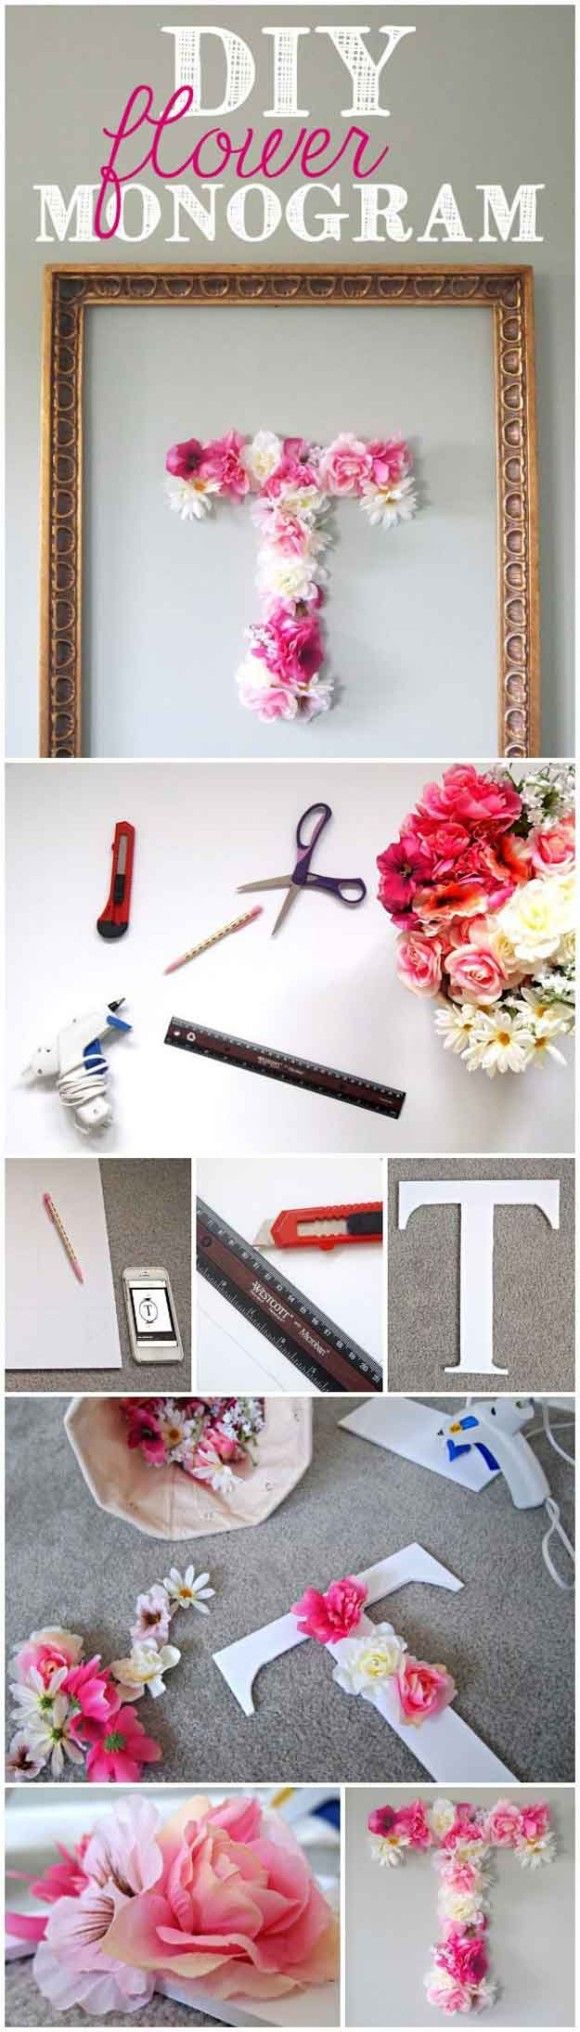 Bedroom Decor Crafts best 25+ teen room decor ideas on pinterest | diy bedroom